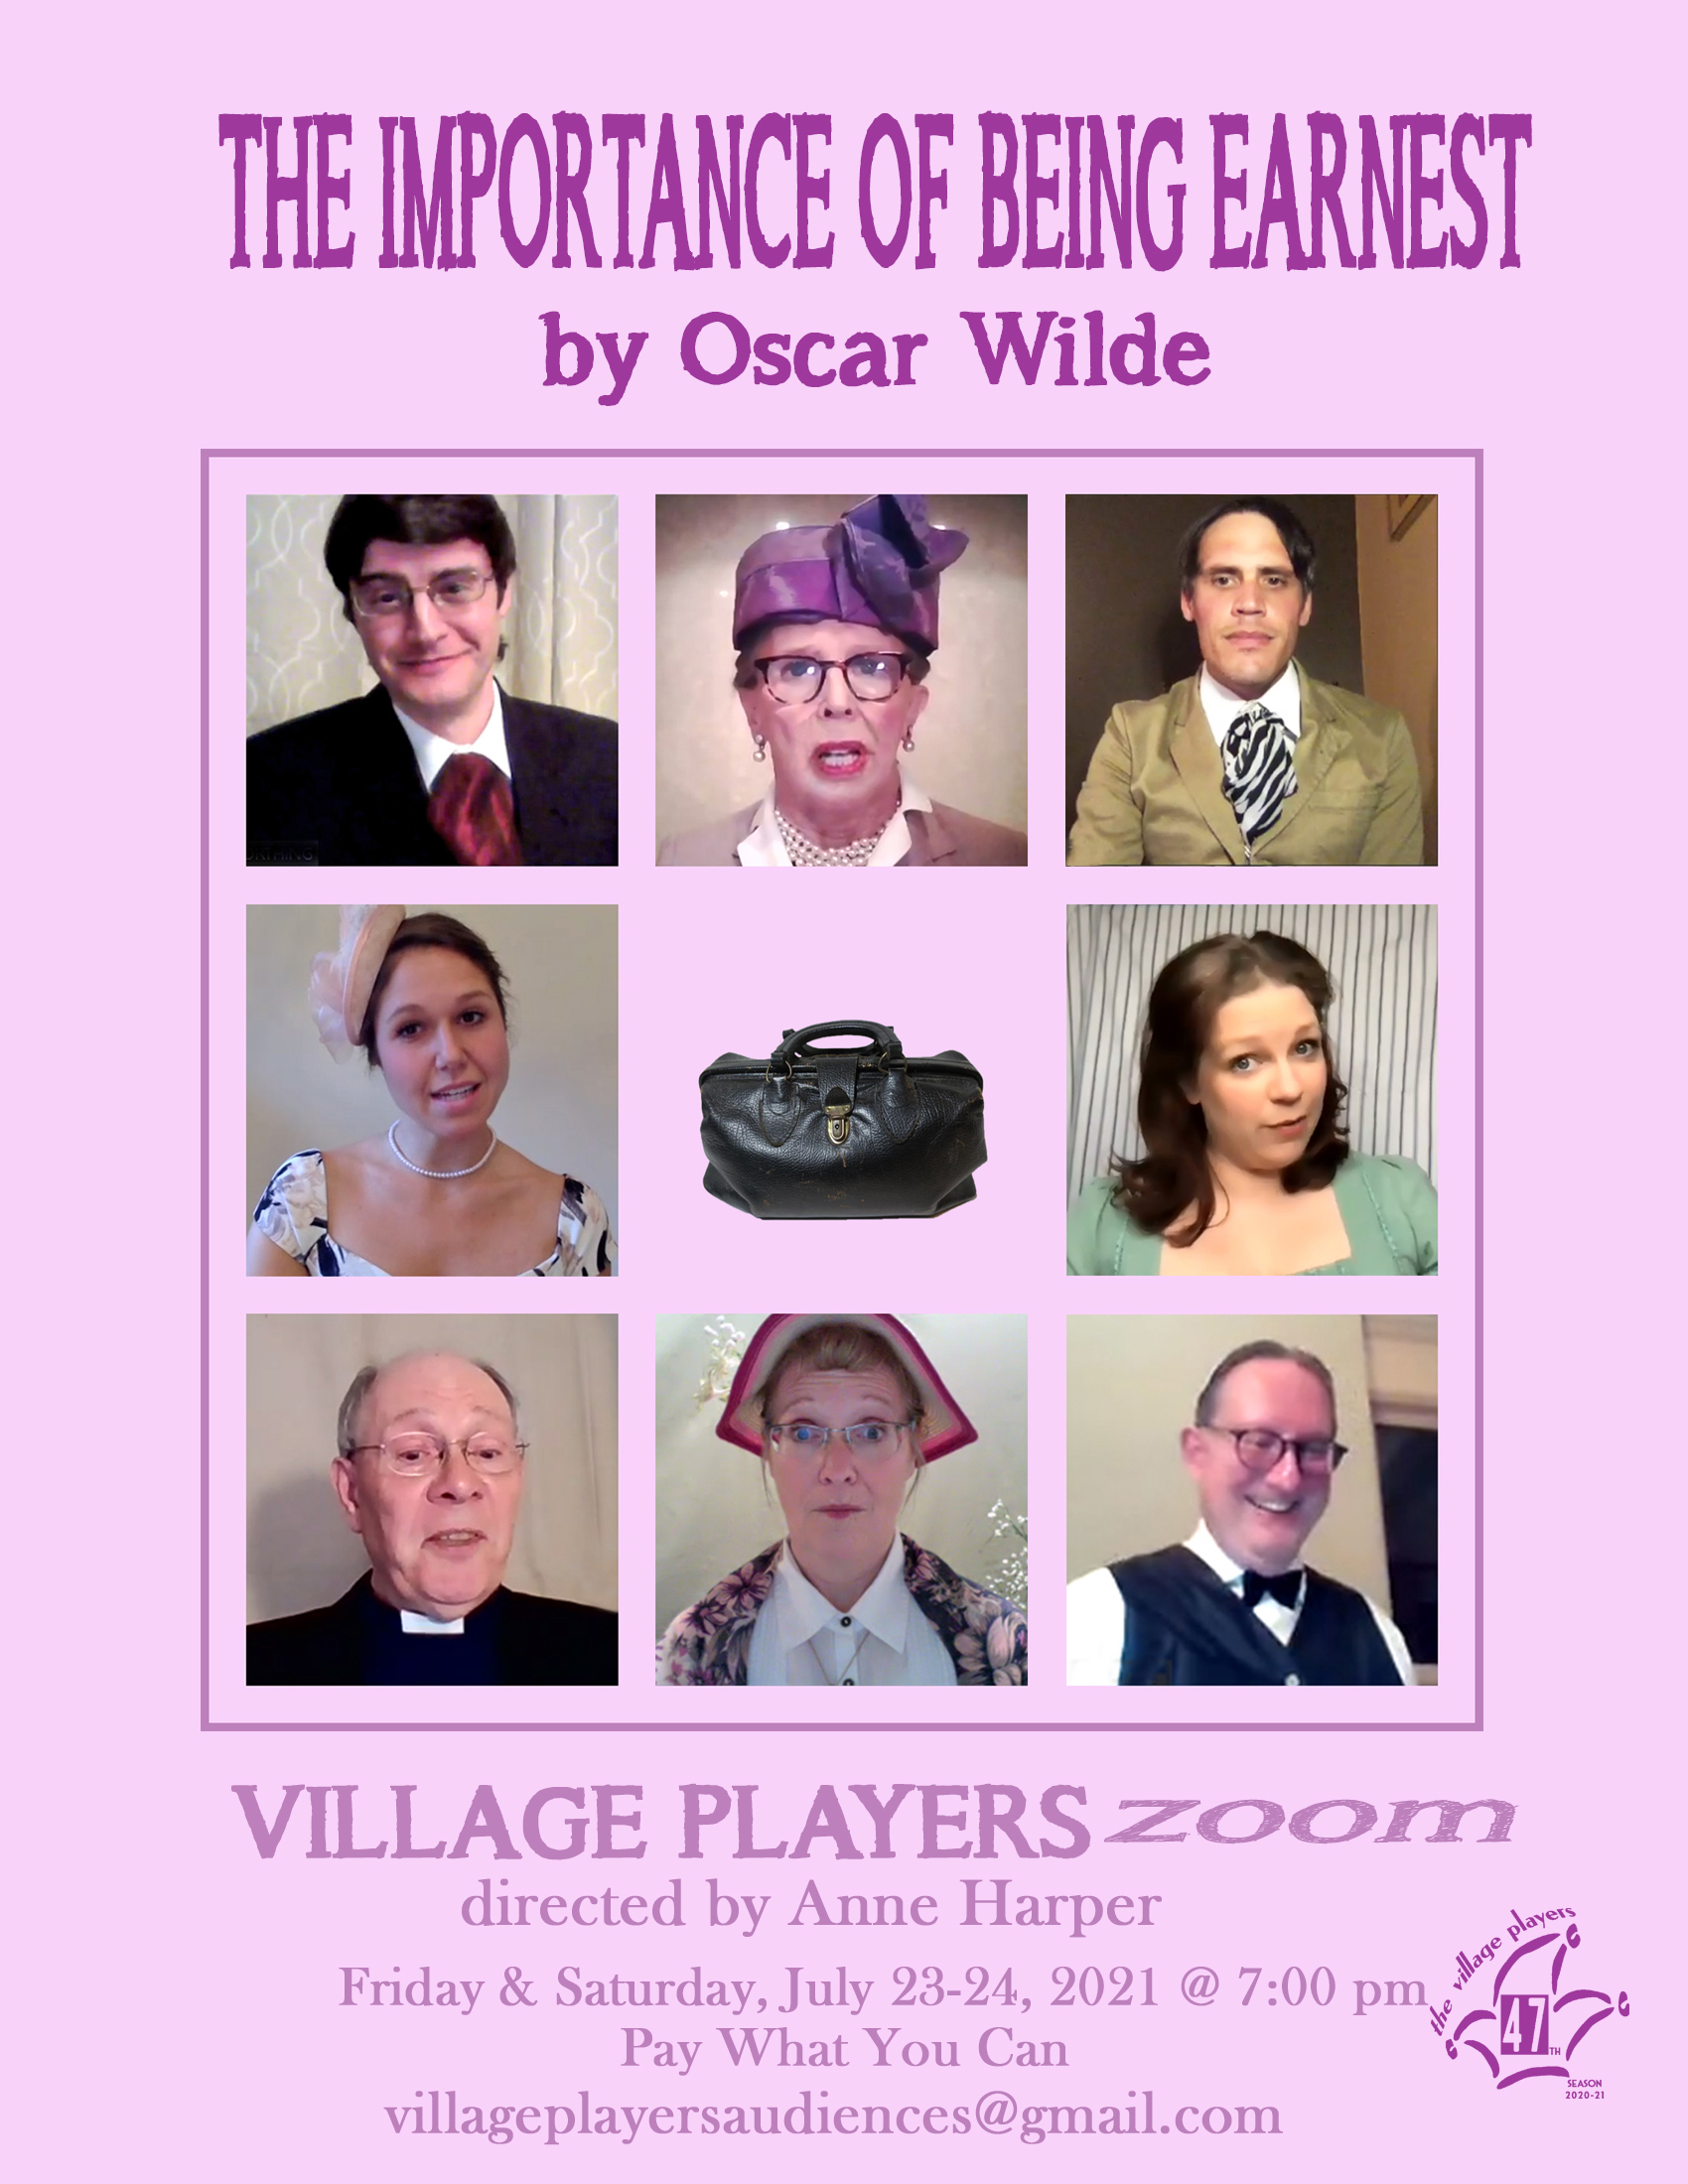 """""""Village Players"""" """"Bloor West Village Players"""" """"Village Playhouse"""" """"Runnymede theatre"""" theatre theater """"community theatre"""" """"Oscar Wilde"""" """"Importance of Being Earnest"""" Zoom"""